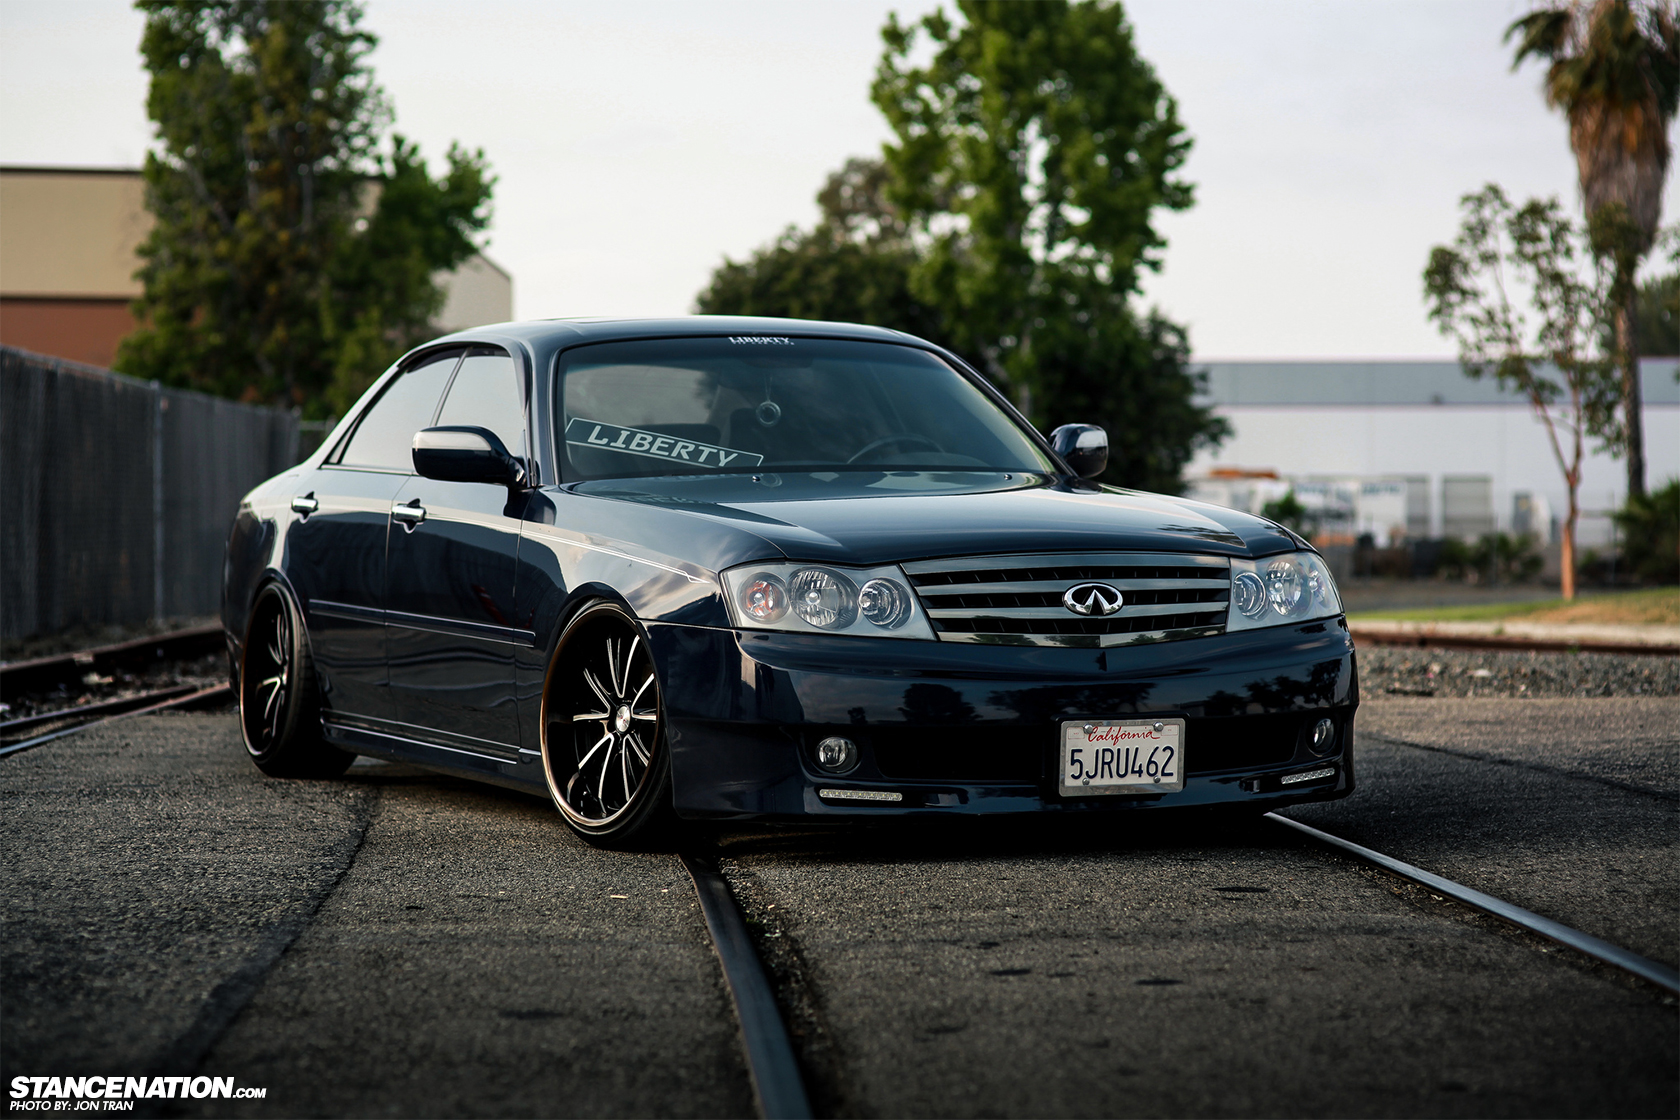 Respect The Name Liberty Vip S M45 Stancenation